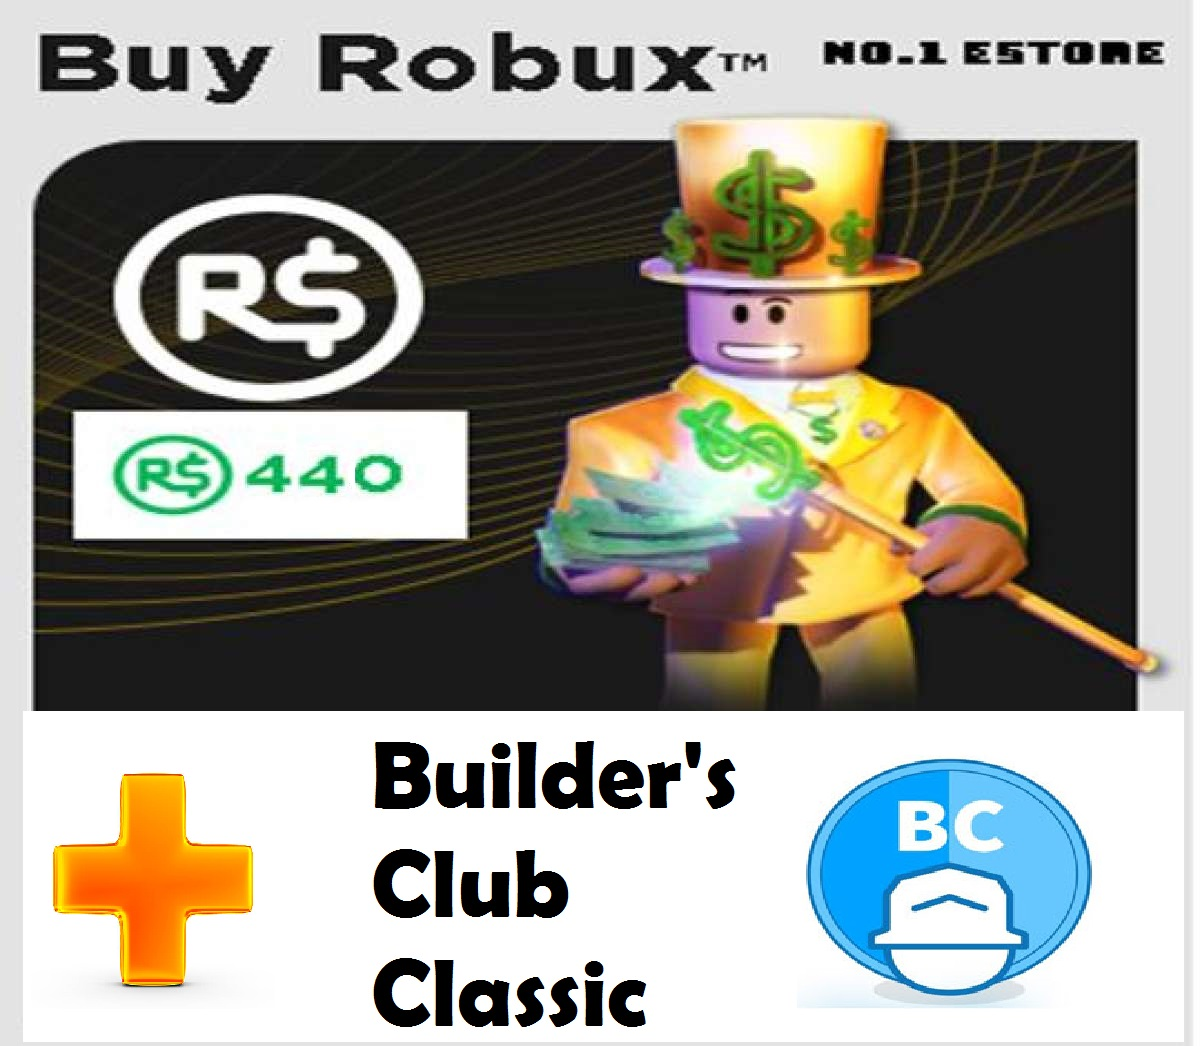 Roblox 440 Robux Direct top up 440 robux + Builder's Club Classic (Not a  physical gift card)